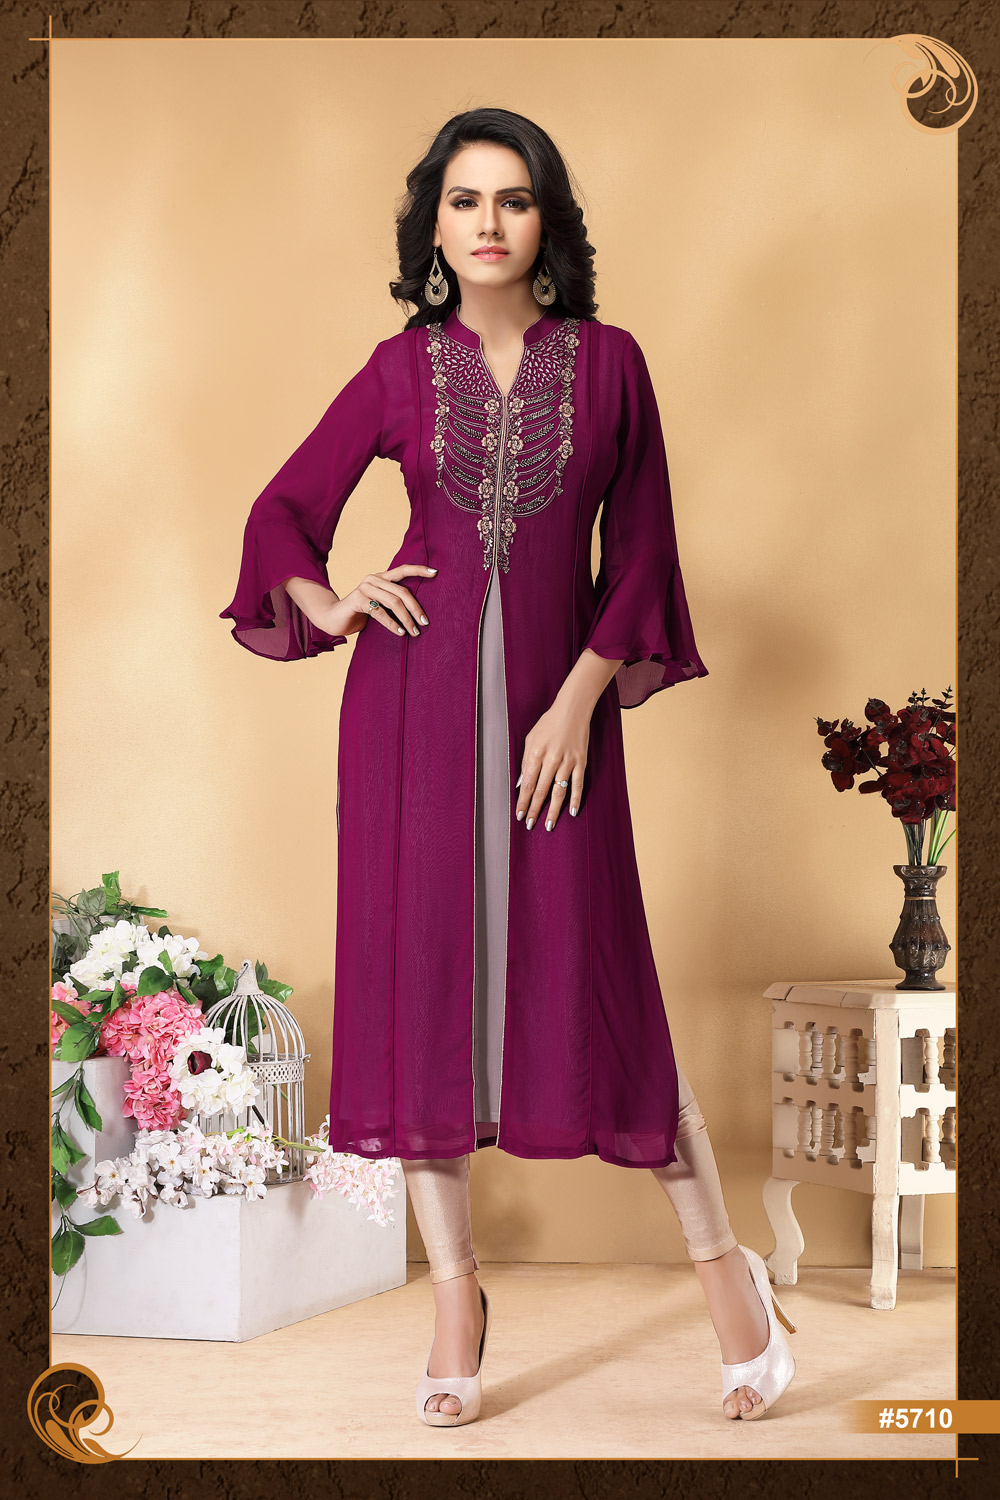 Bell sleeved Kurti with stunning hand work